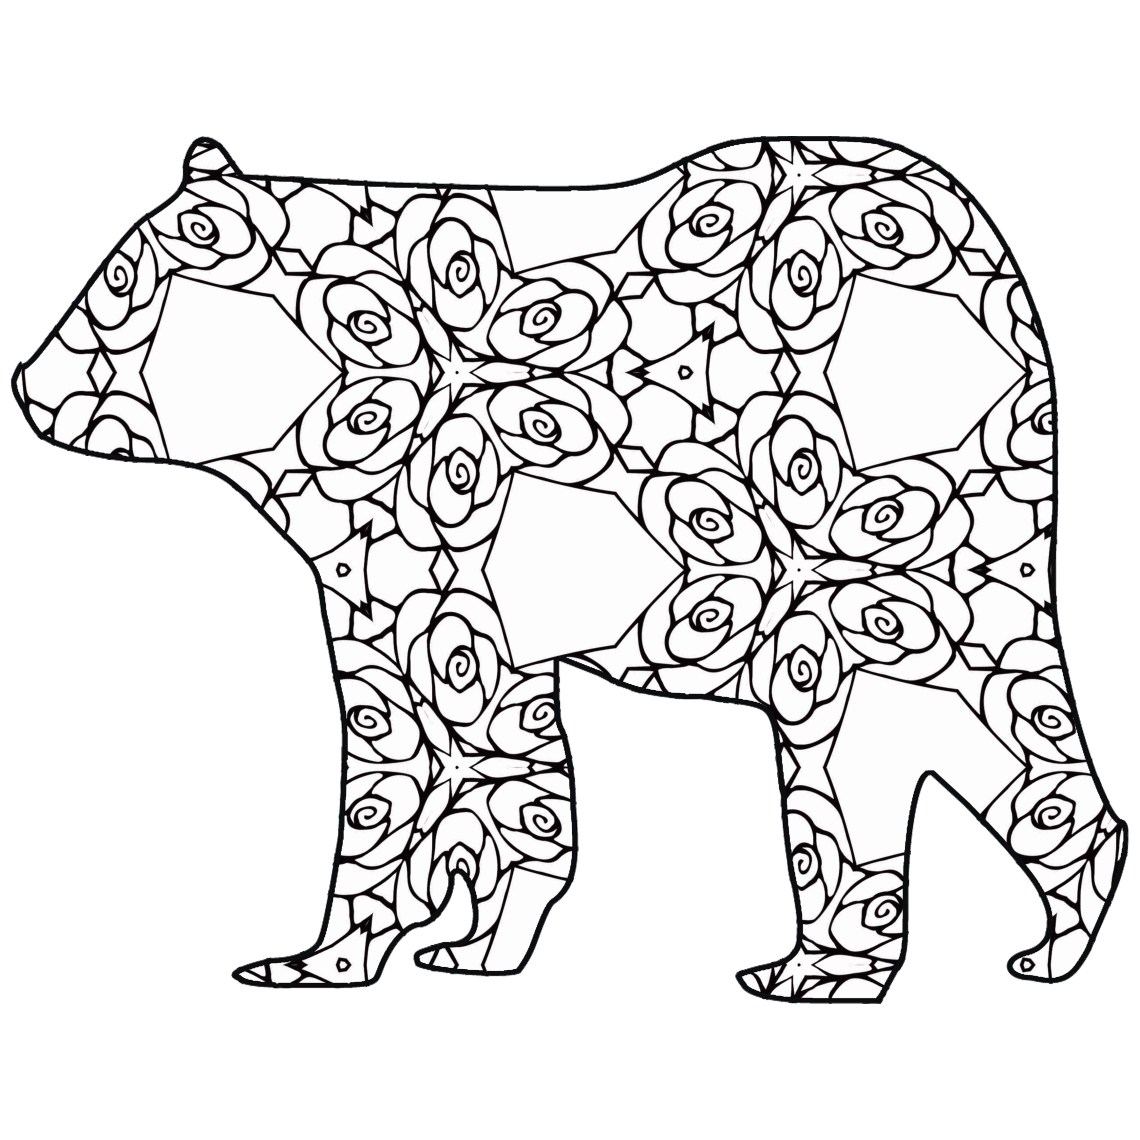 30 Free Printable Geometric Animal Coloring Pages | The ... | free printable colouring pages of wild animals